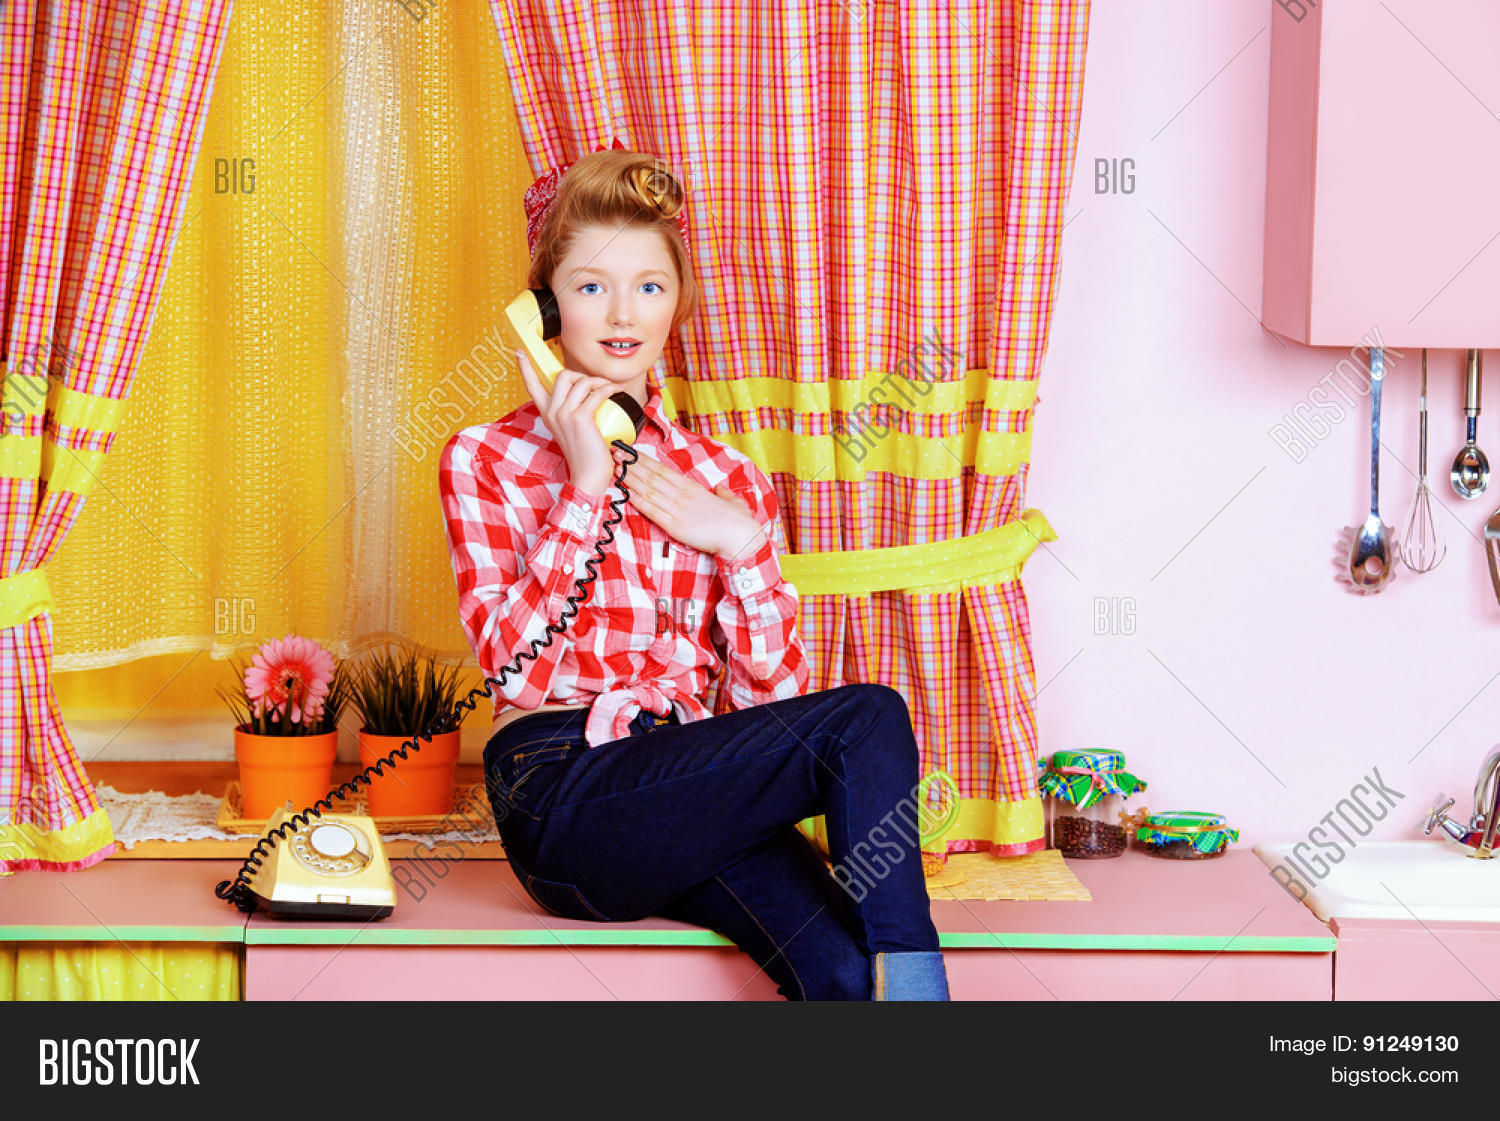 05369968b4c3 Pretty teen girl talking on the phone on a pink kitchen. Beauty